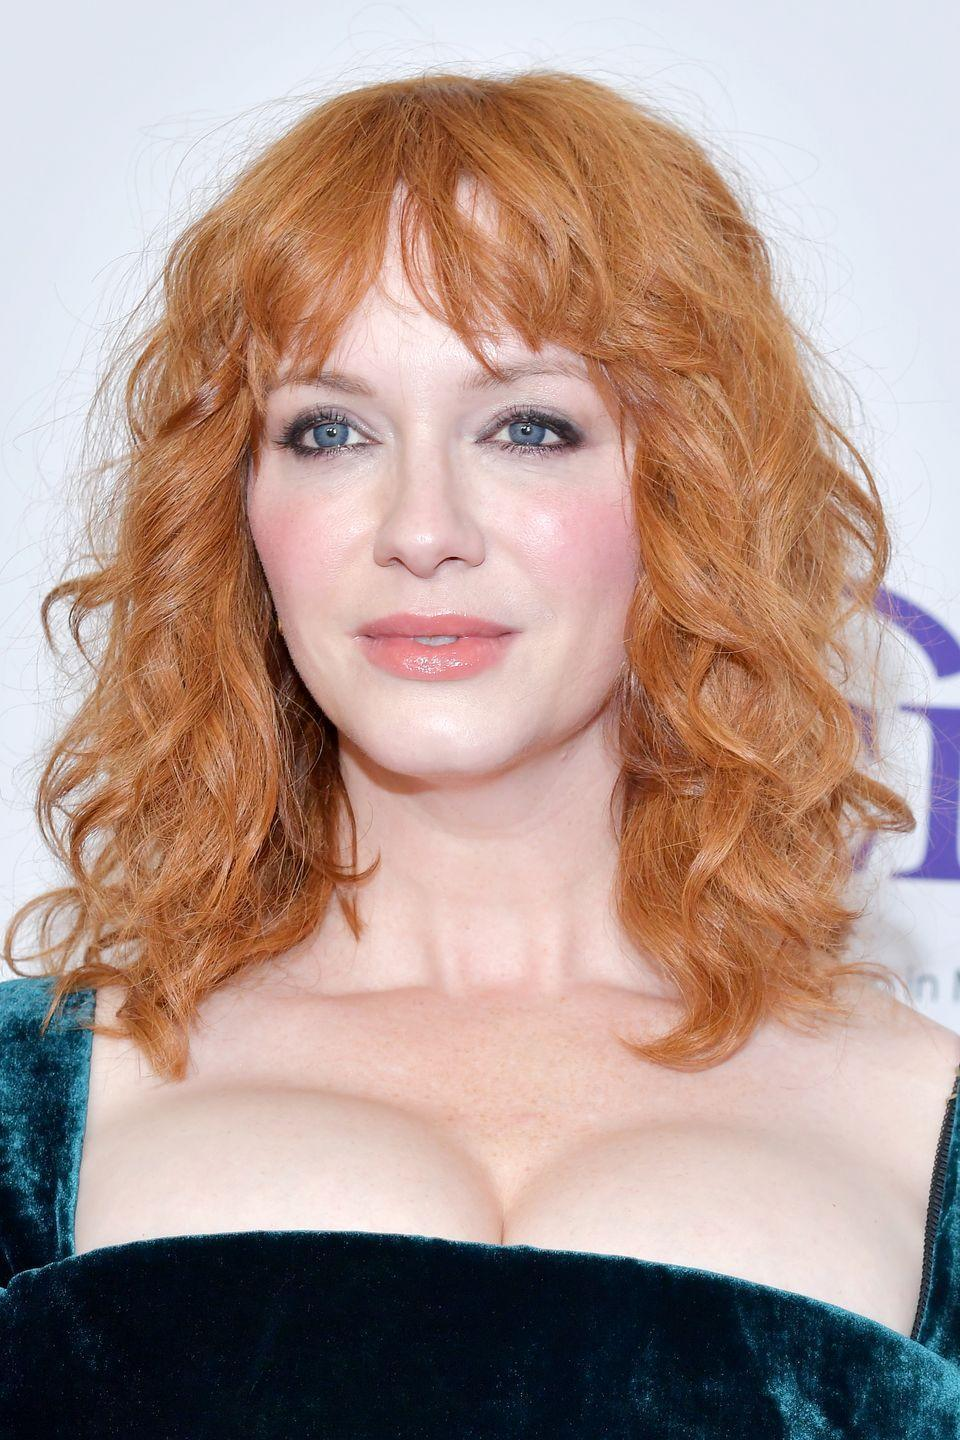 <p>We're seeing corals and reds this year, so it's almost inevitable that people will start to copy the color of their favorite order at Starbucks. Just check out <strong>Christina Hendricks</strong>'s hair, which has a reddish tone with a splash of cream. </p>